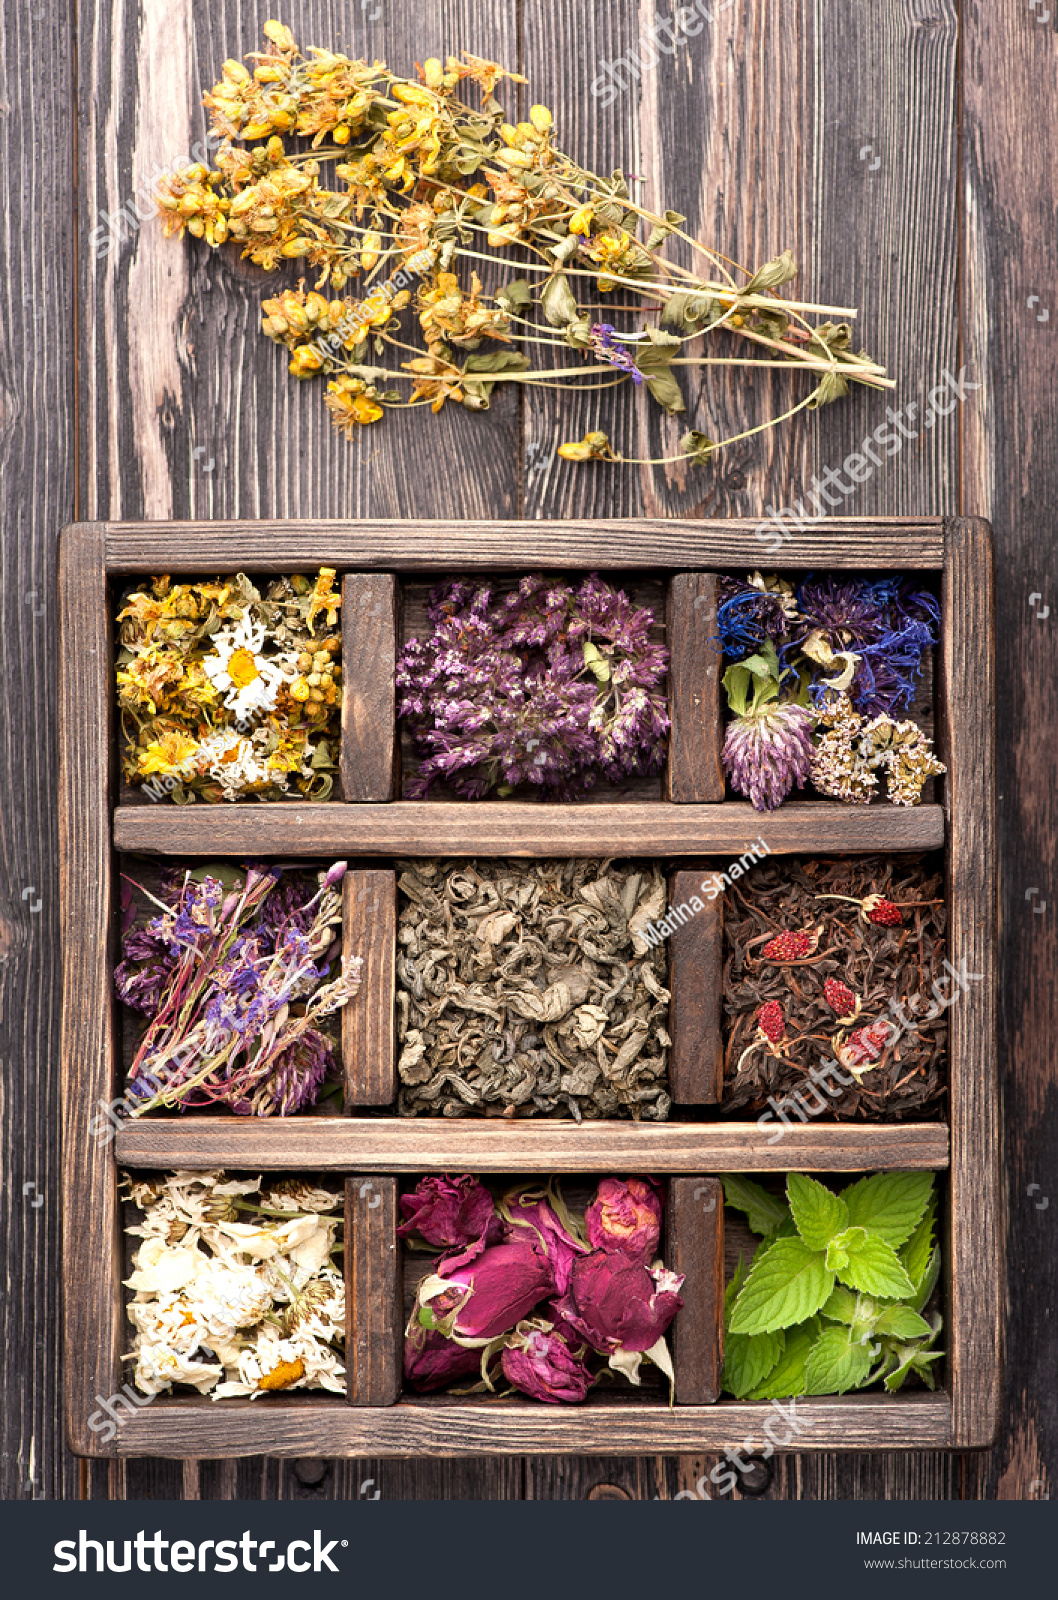 Dried Herbs and flowers in vintage box on wooden background. #212878882